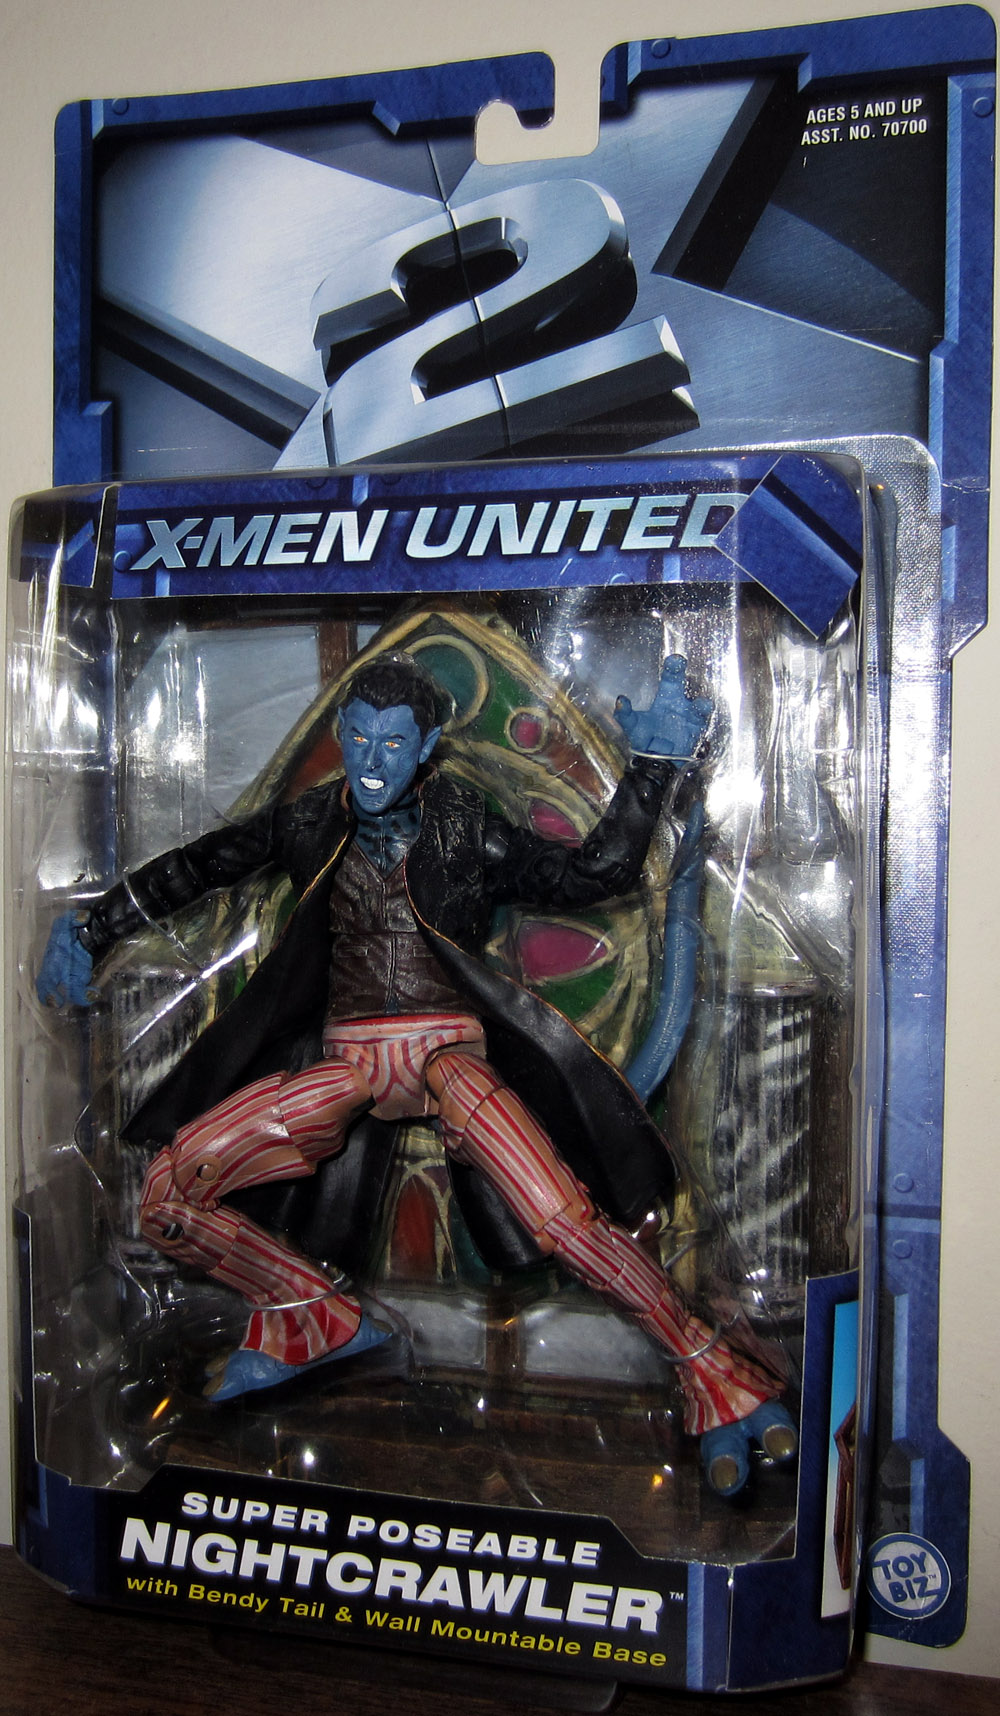 Nightcrawler (X2, X-Men 2 United)